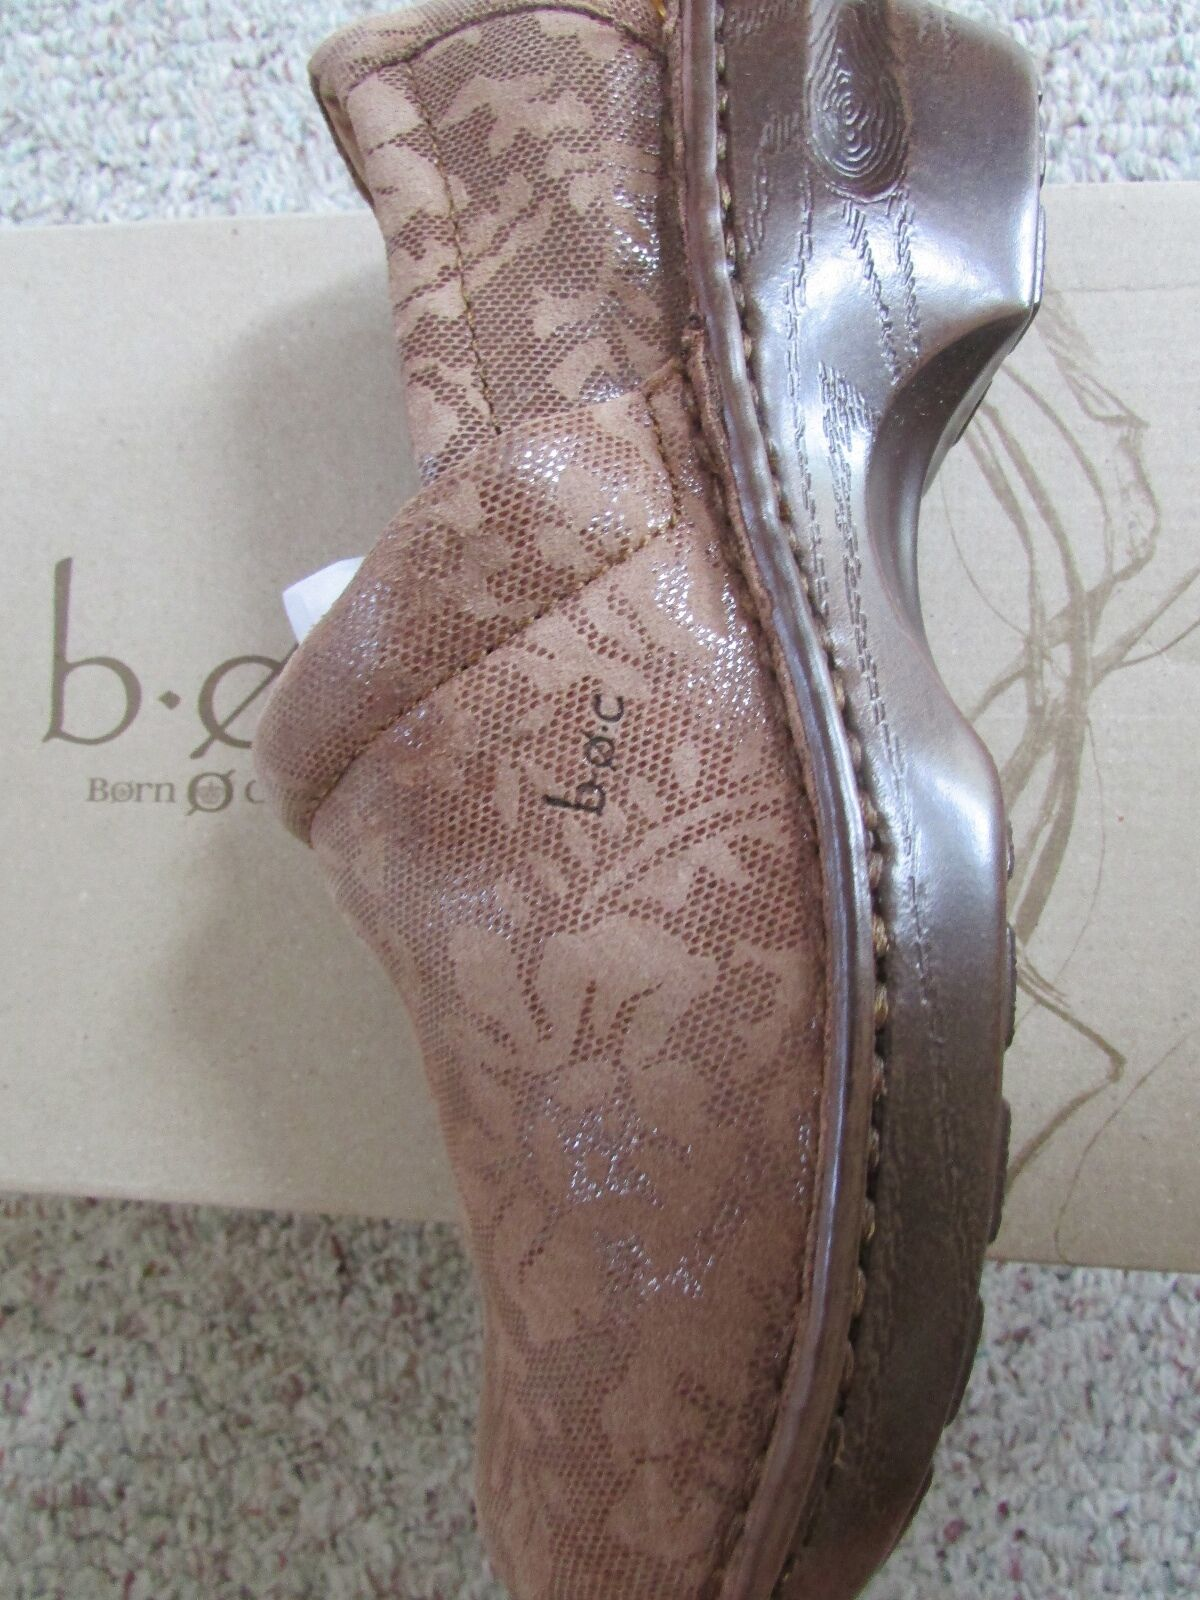 NEW BORN SLIP B.O.C PEGGY TAN SLIP BORN ON CLOG schuhe damen 7.5 braun AUTUMN 32006e